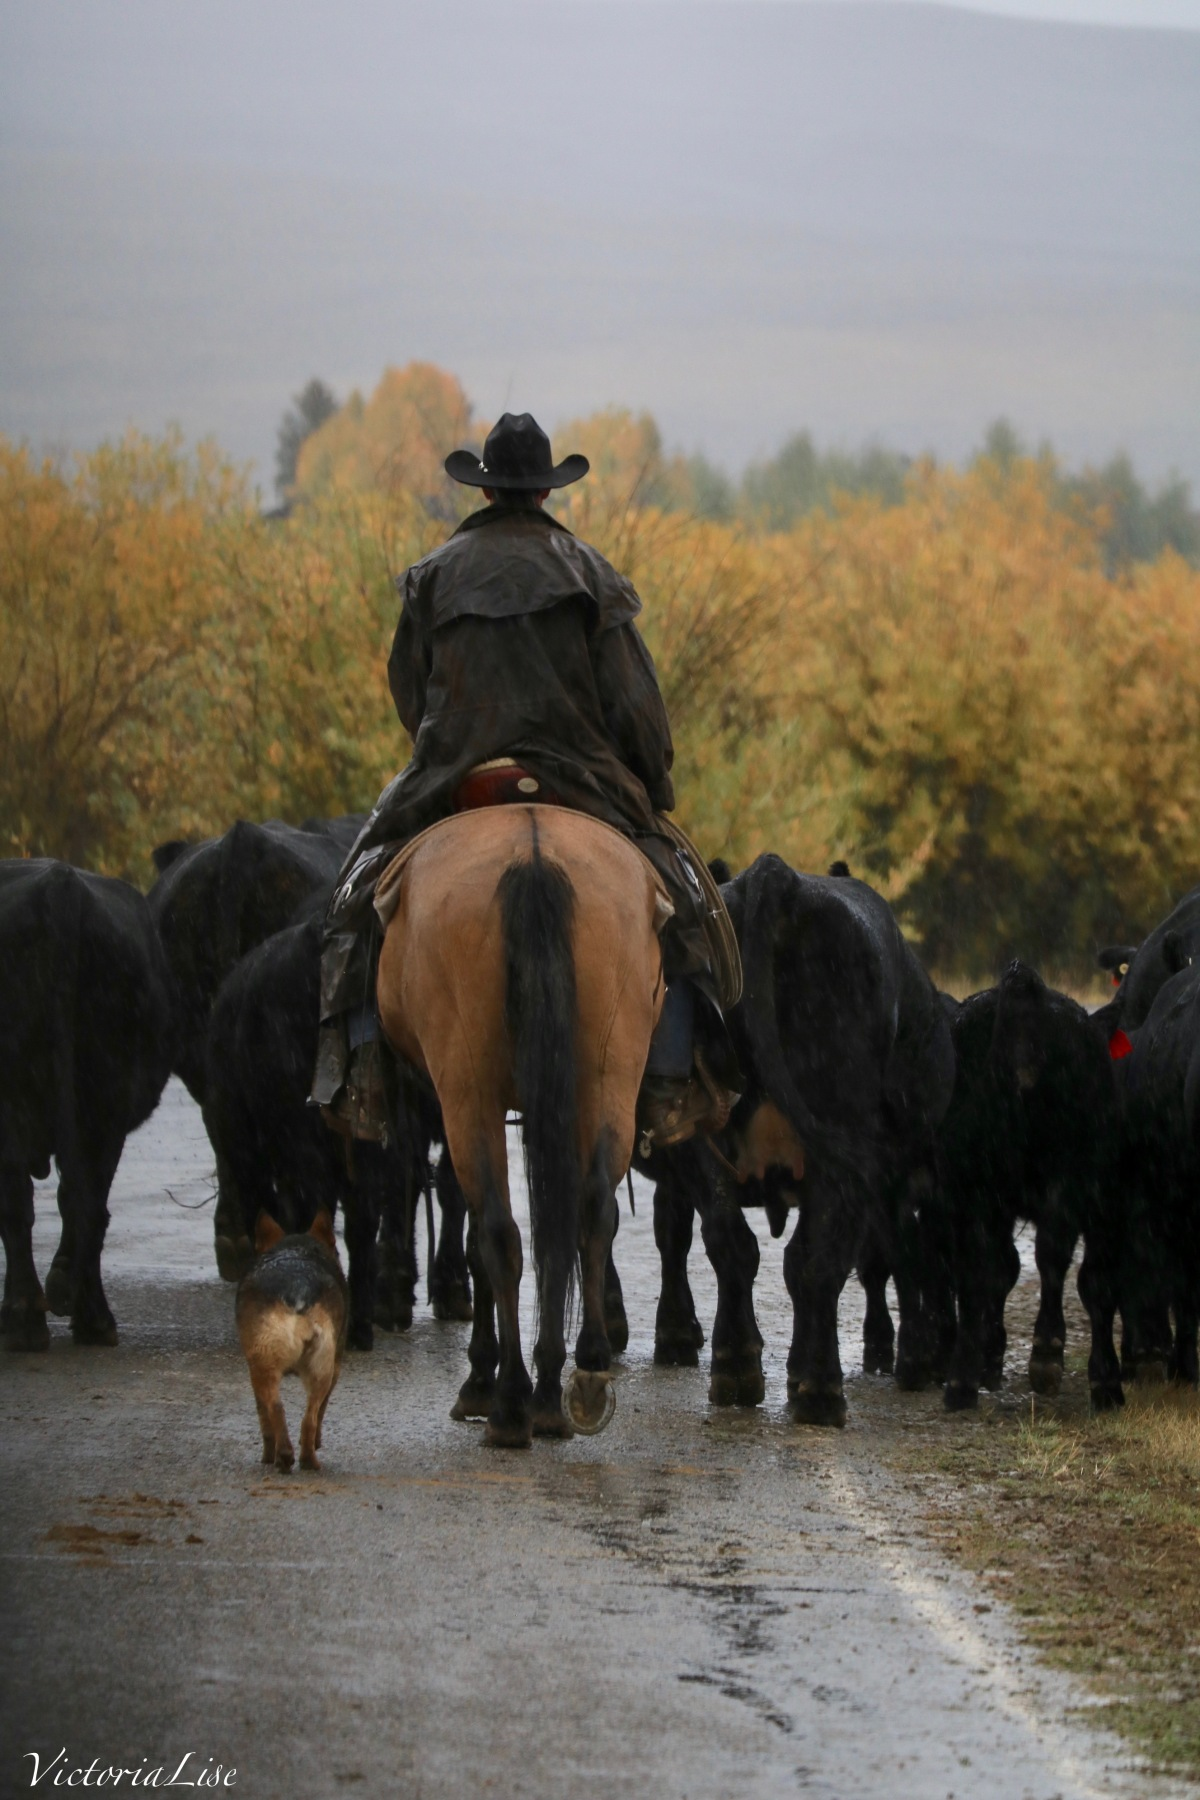 Cattle dog accompanies Cowboy on a Colorado Cattle Drive. ©Victoria Lise 2018.